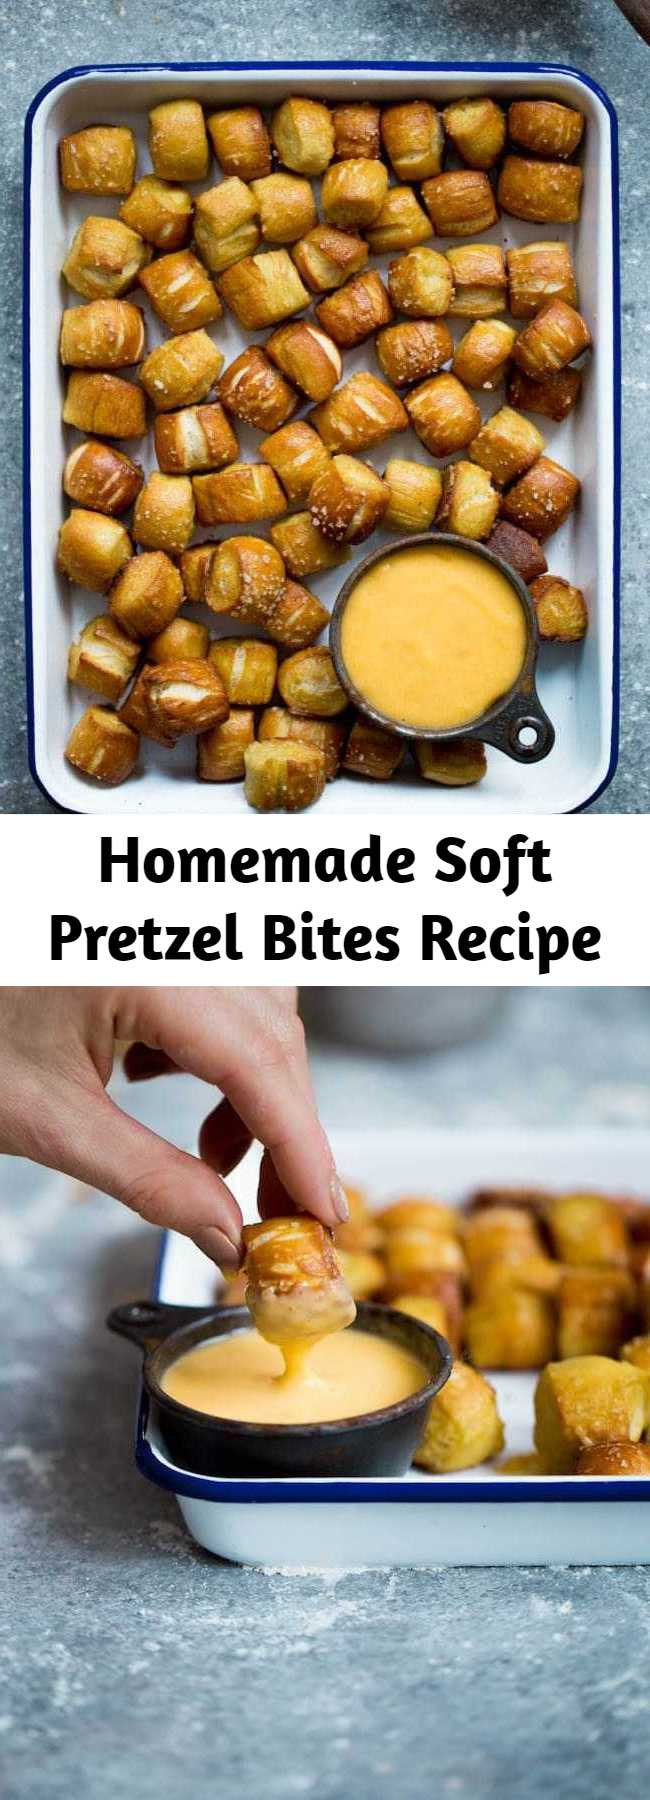 Homemade Soft Pretzel Bites Recipe - Homemade Soft Pretzel Bites-these little pretzel bites are fun to make at home and are great for parties and game day!